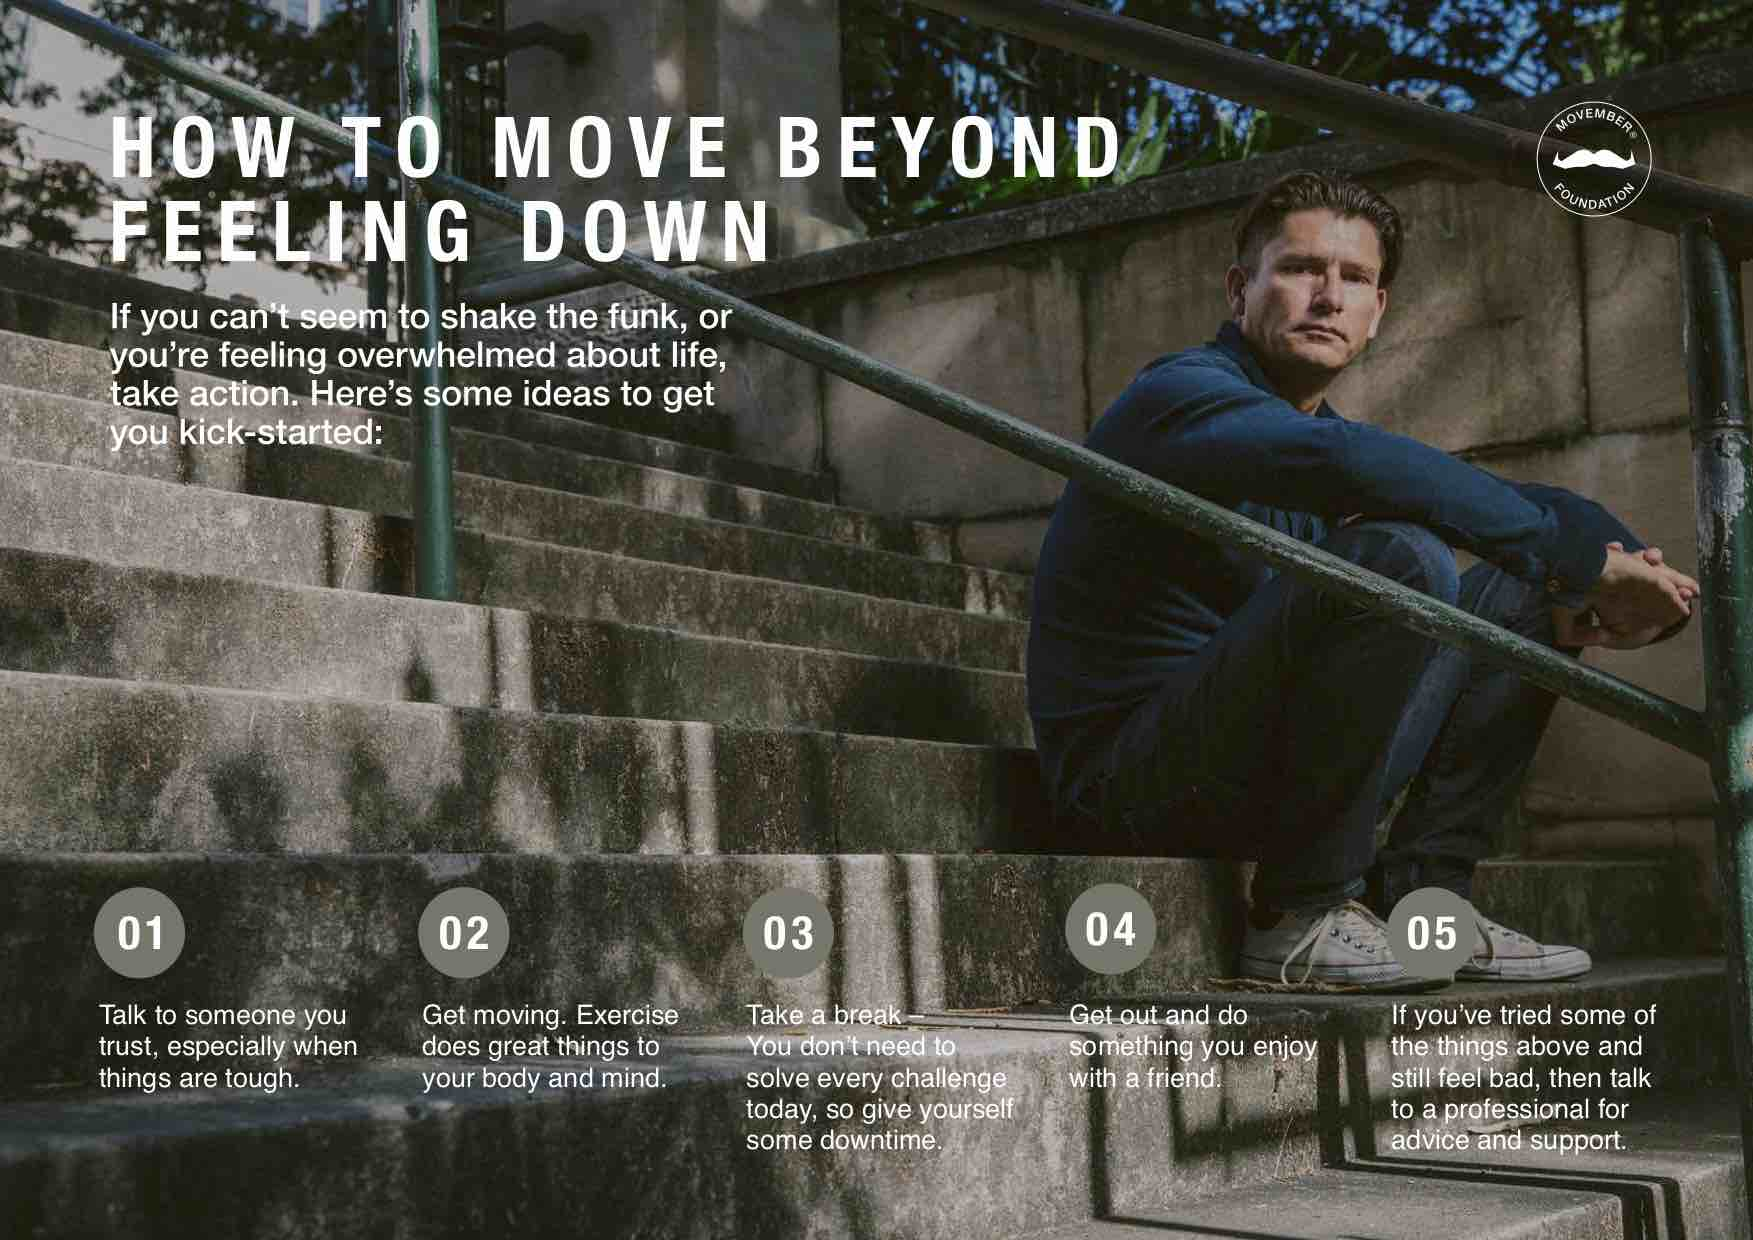 Featured image for Suicide-Prevention_US_Mo_Guide_HowToMoveBeyond